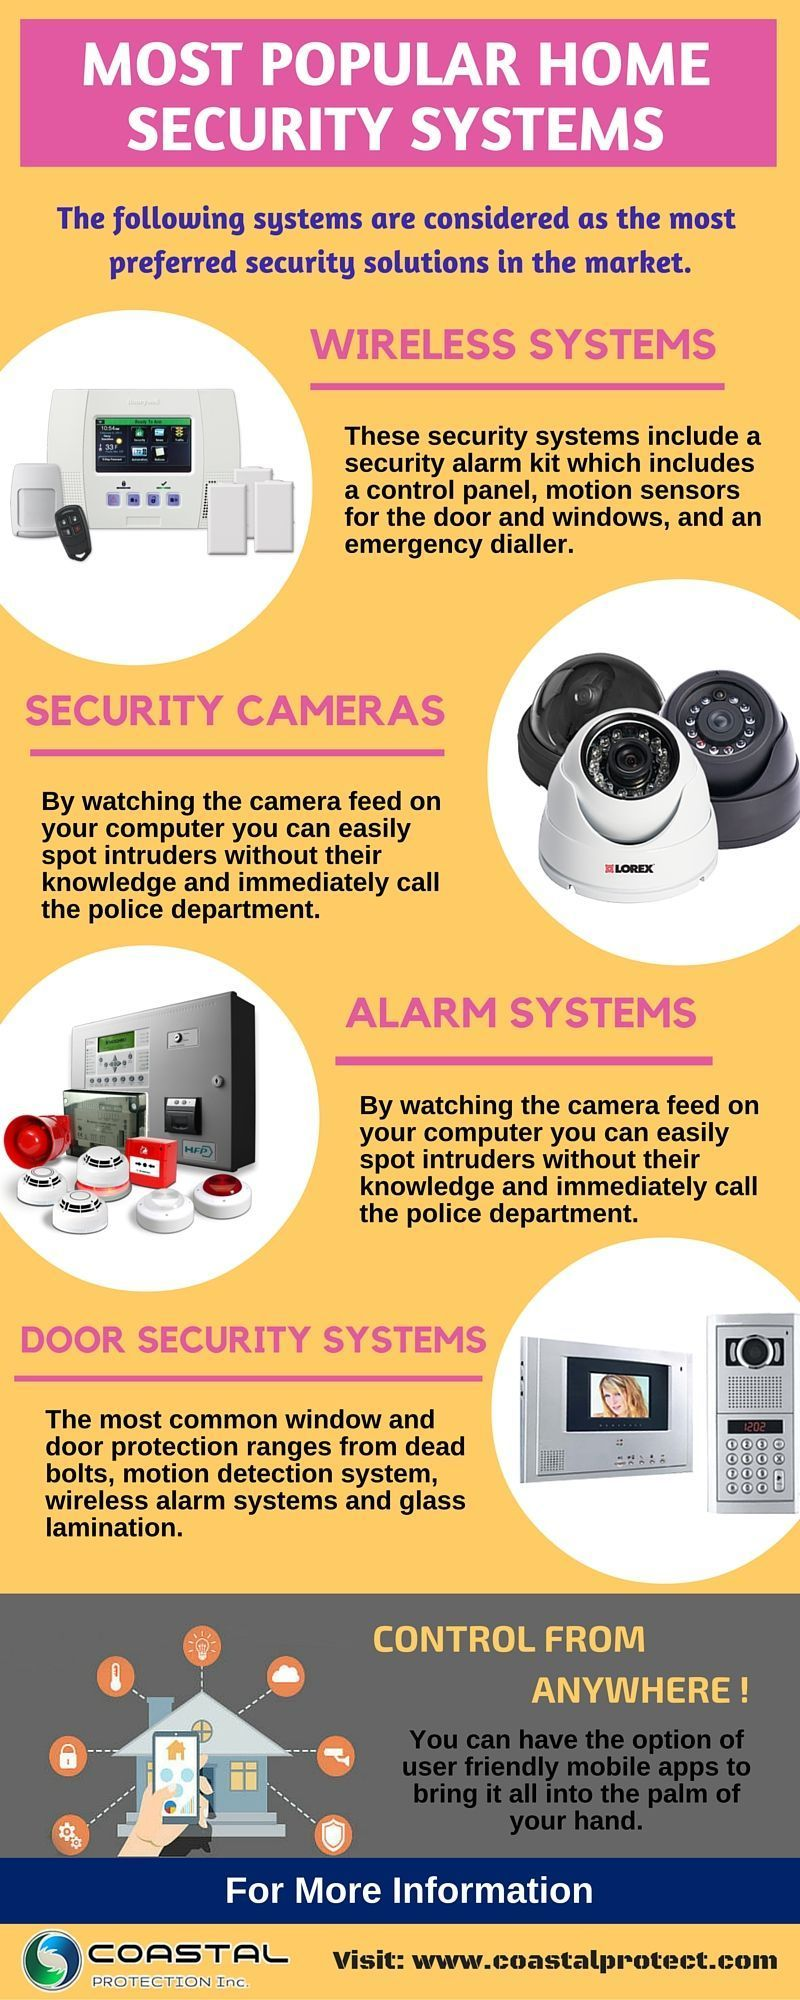 Most Popular Home Security Systems Home Security Systems Home Security Tips Wireless Home Security Systems